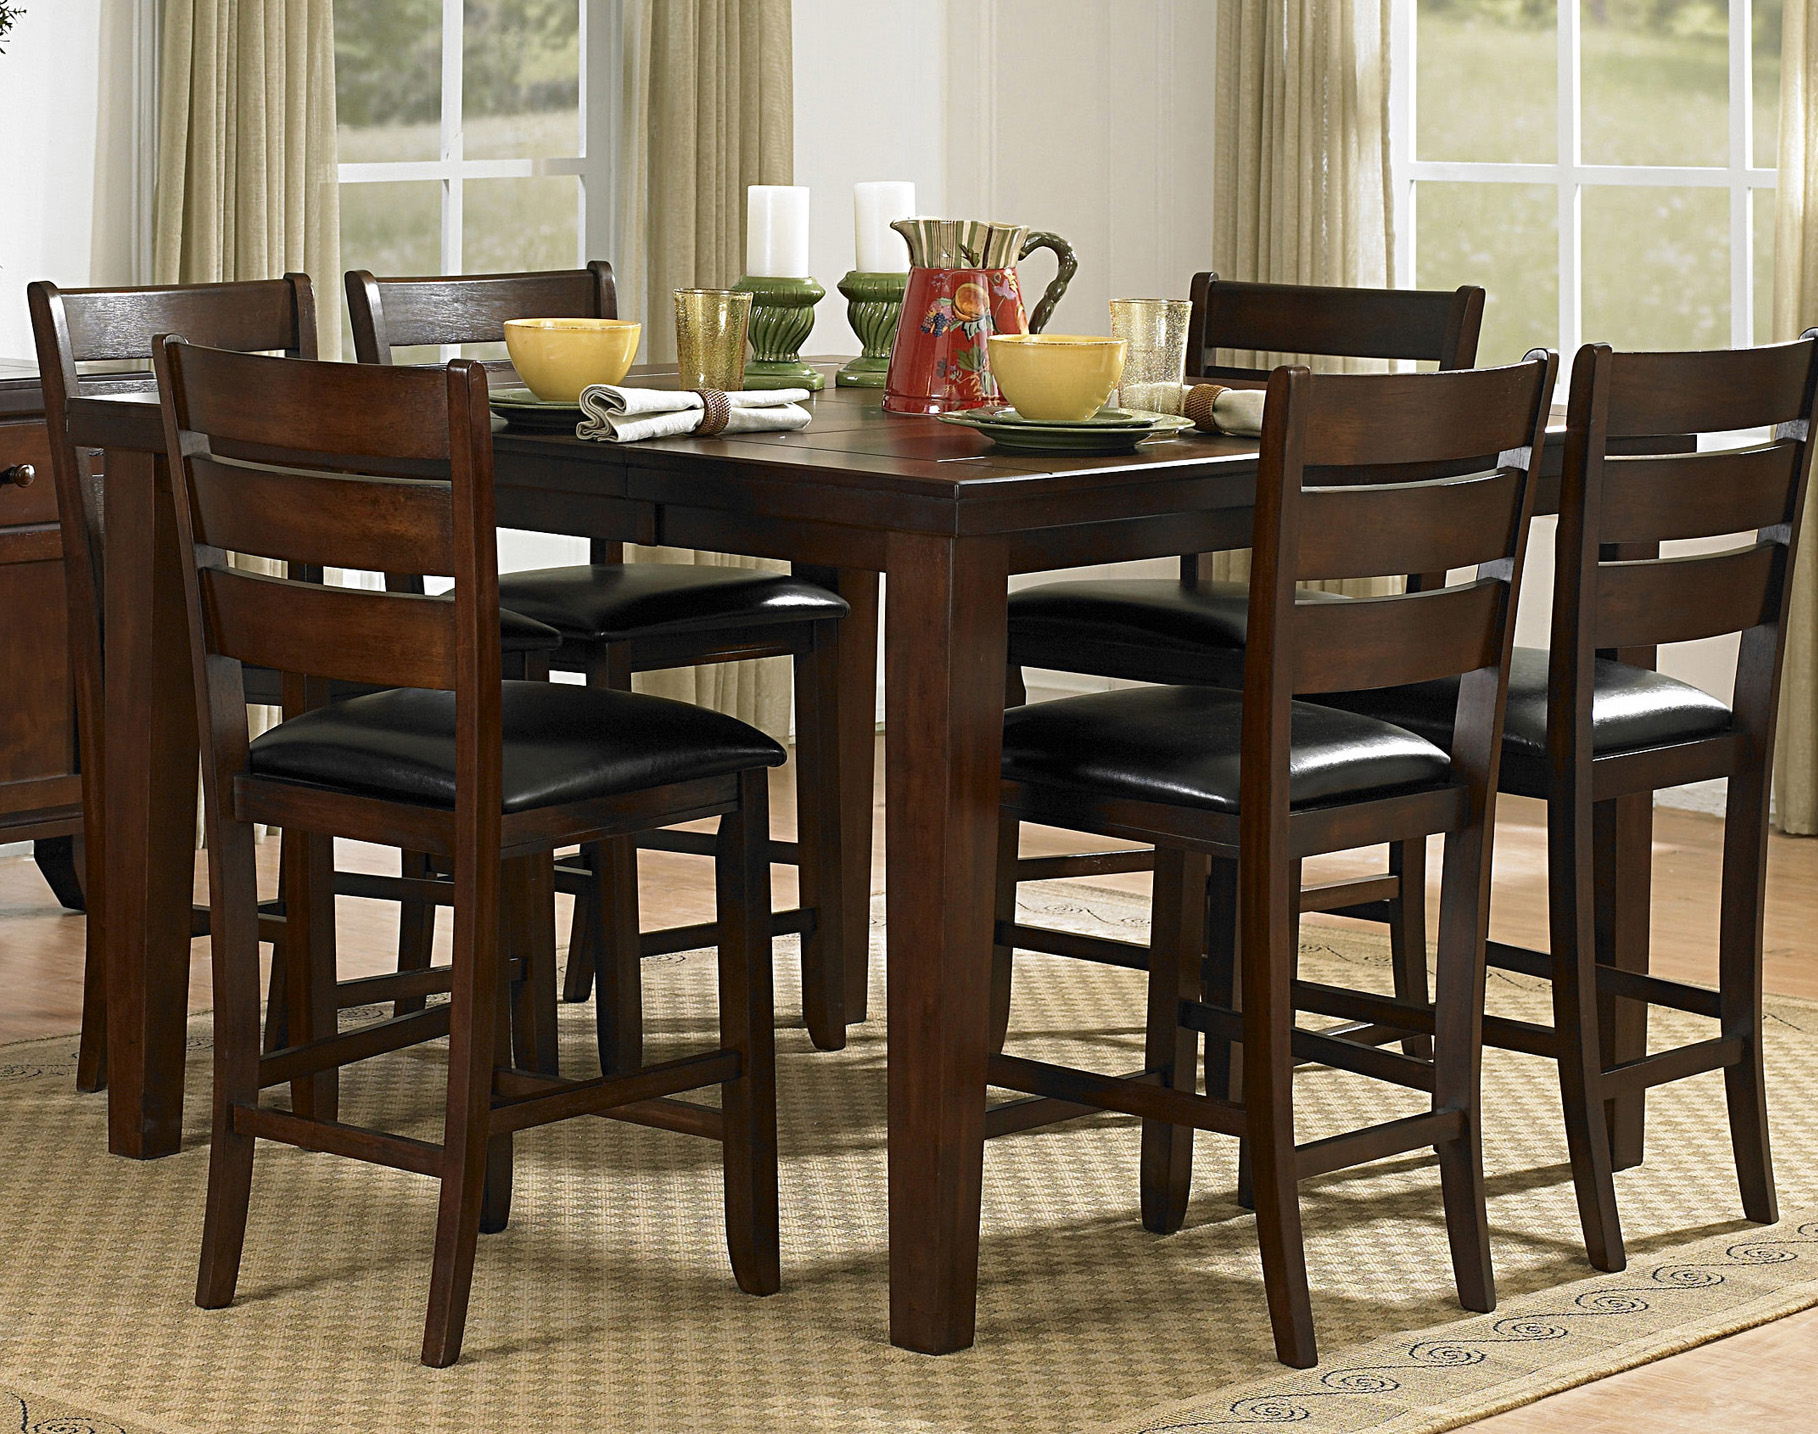 Homelegance ameillia 5pc counter height dining room set for Counter height dining set